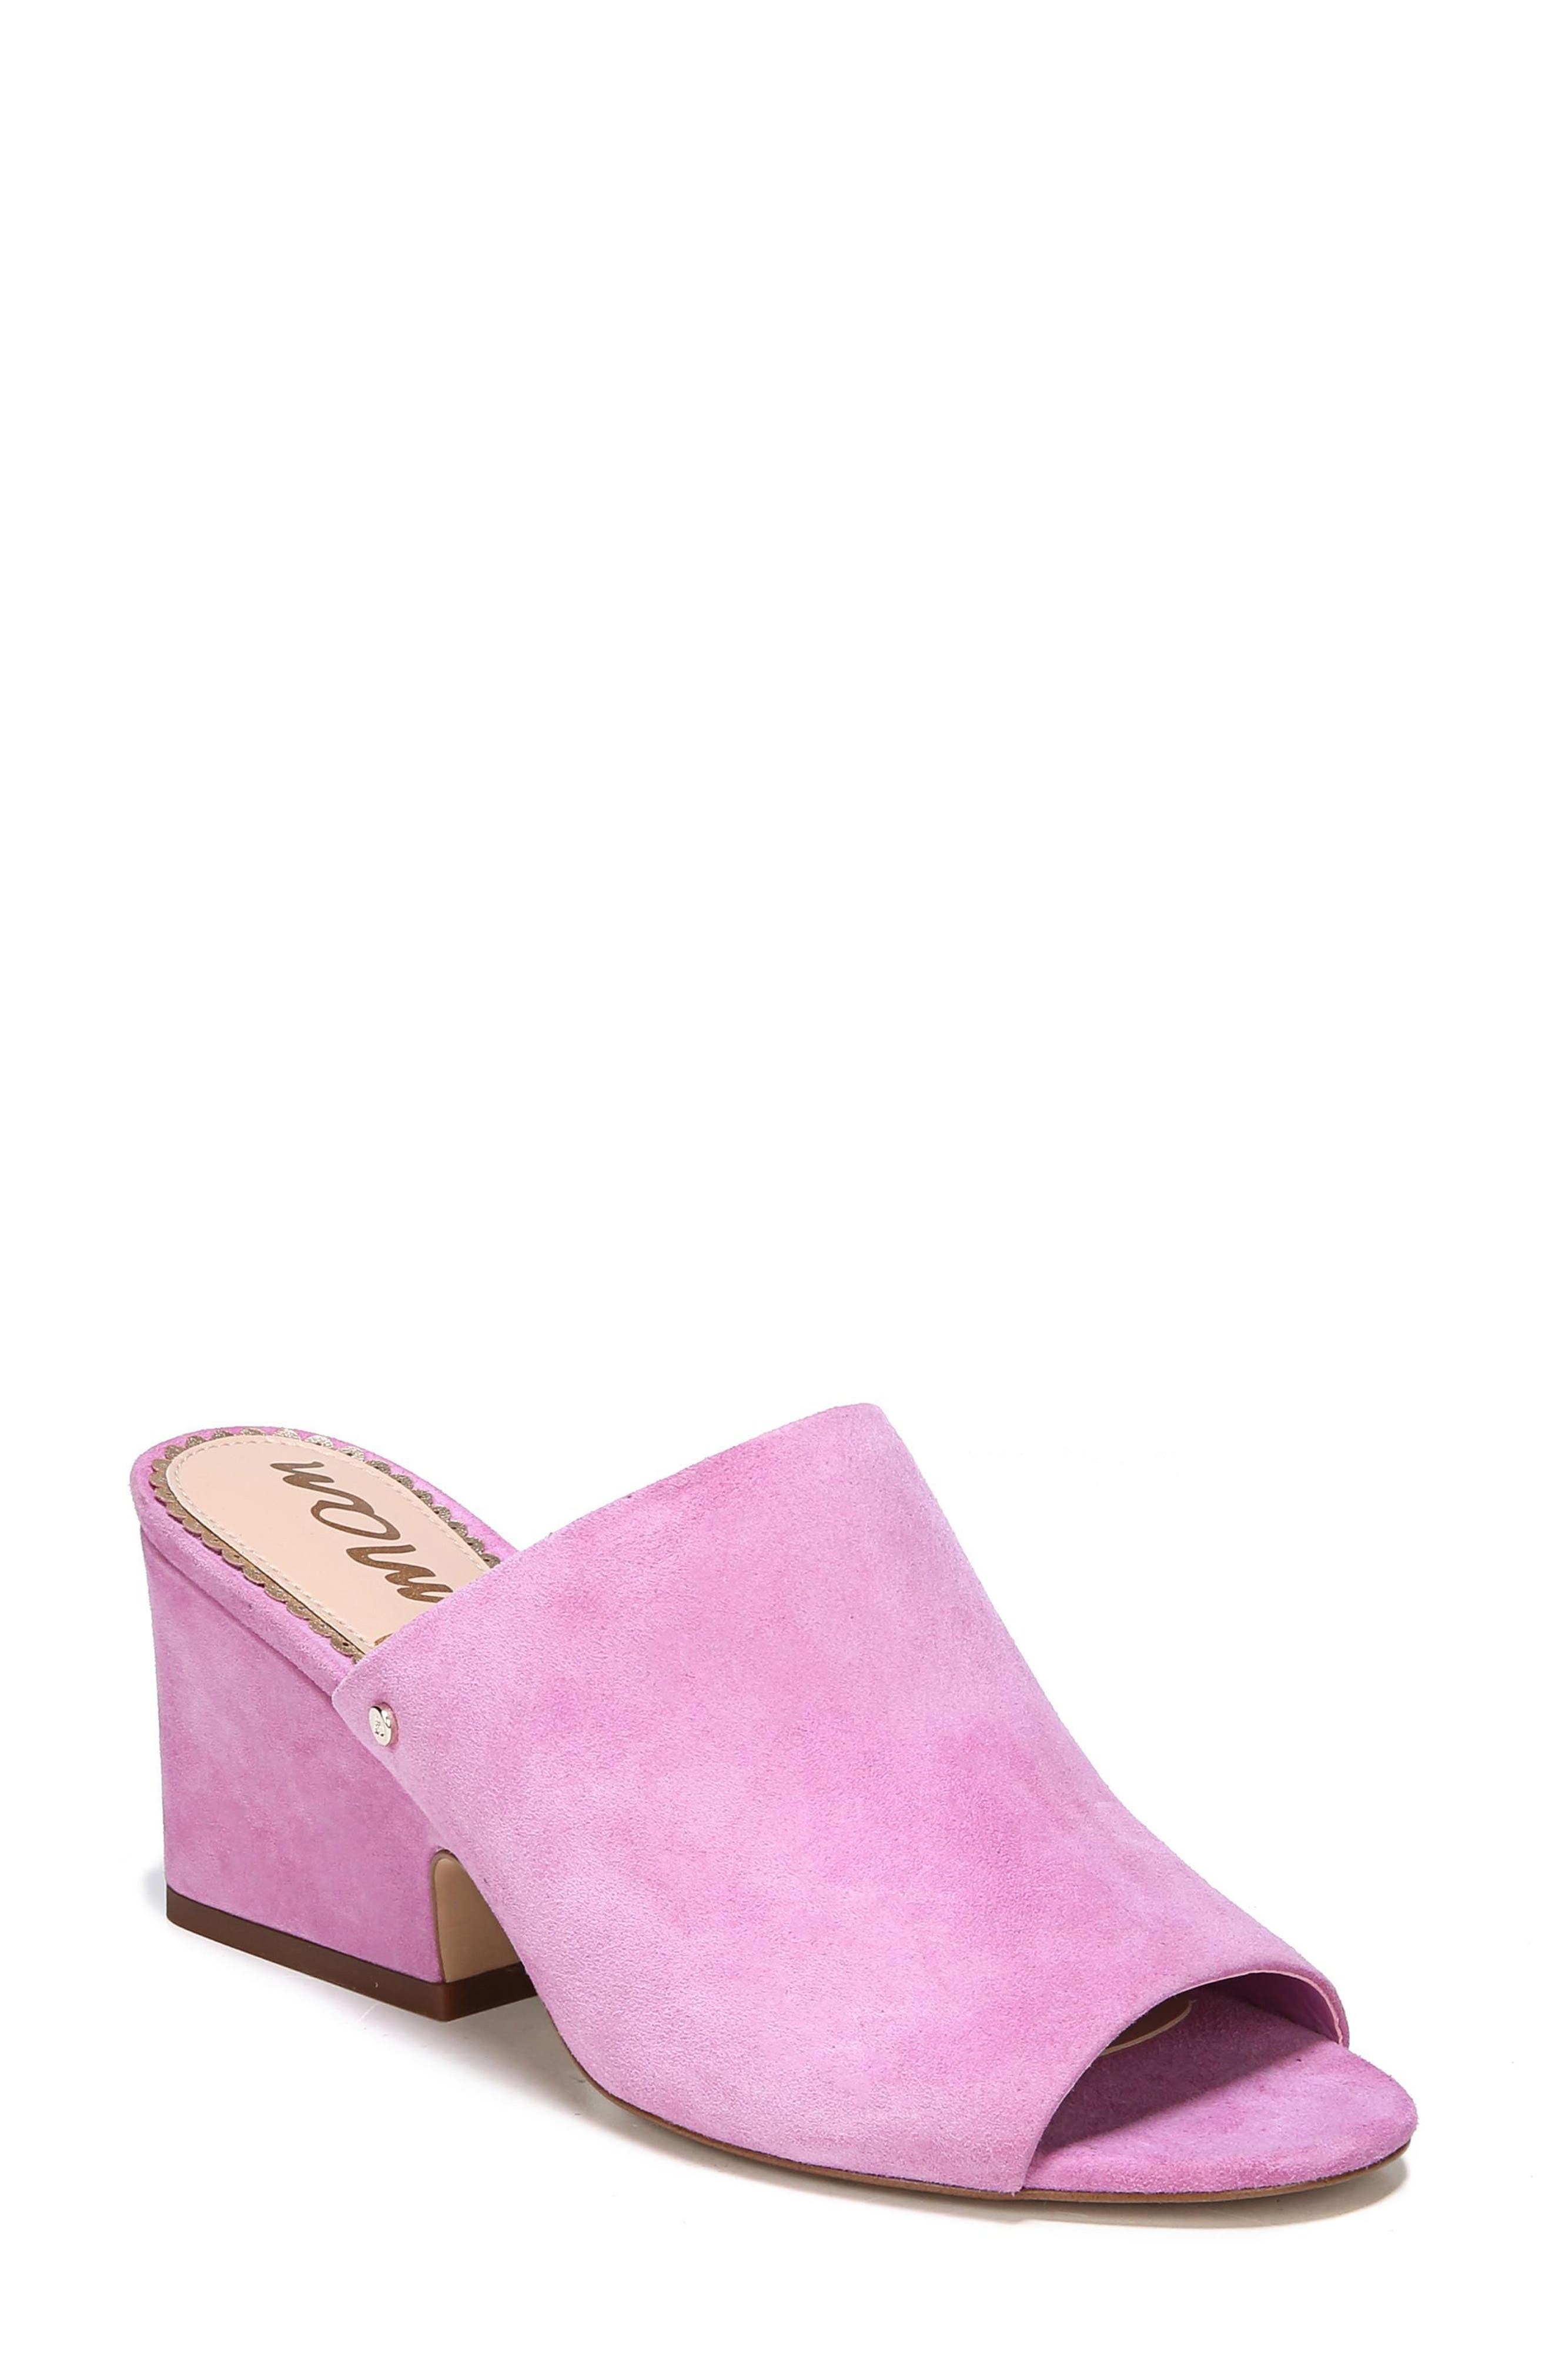 Rheta Mule,                             Main thumbnail 1, color,                             Fiji Pink Suede